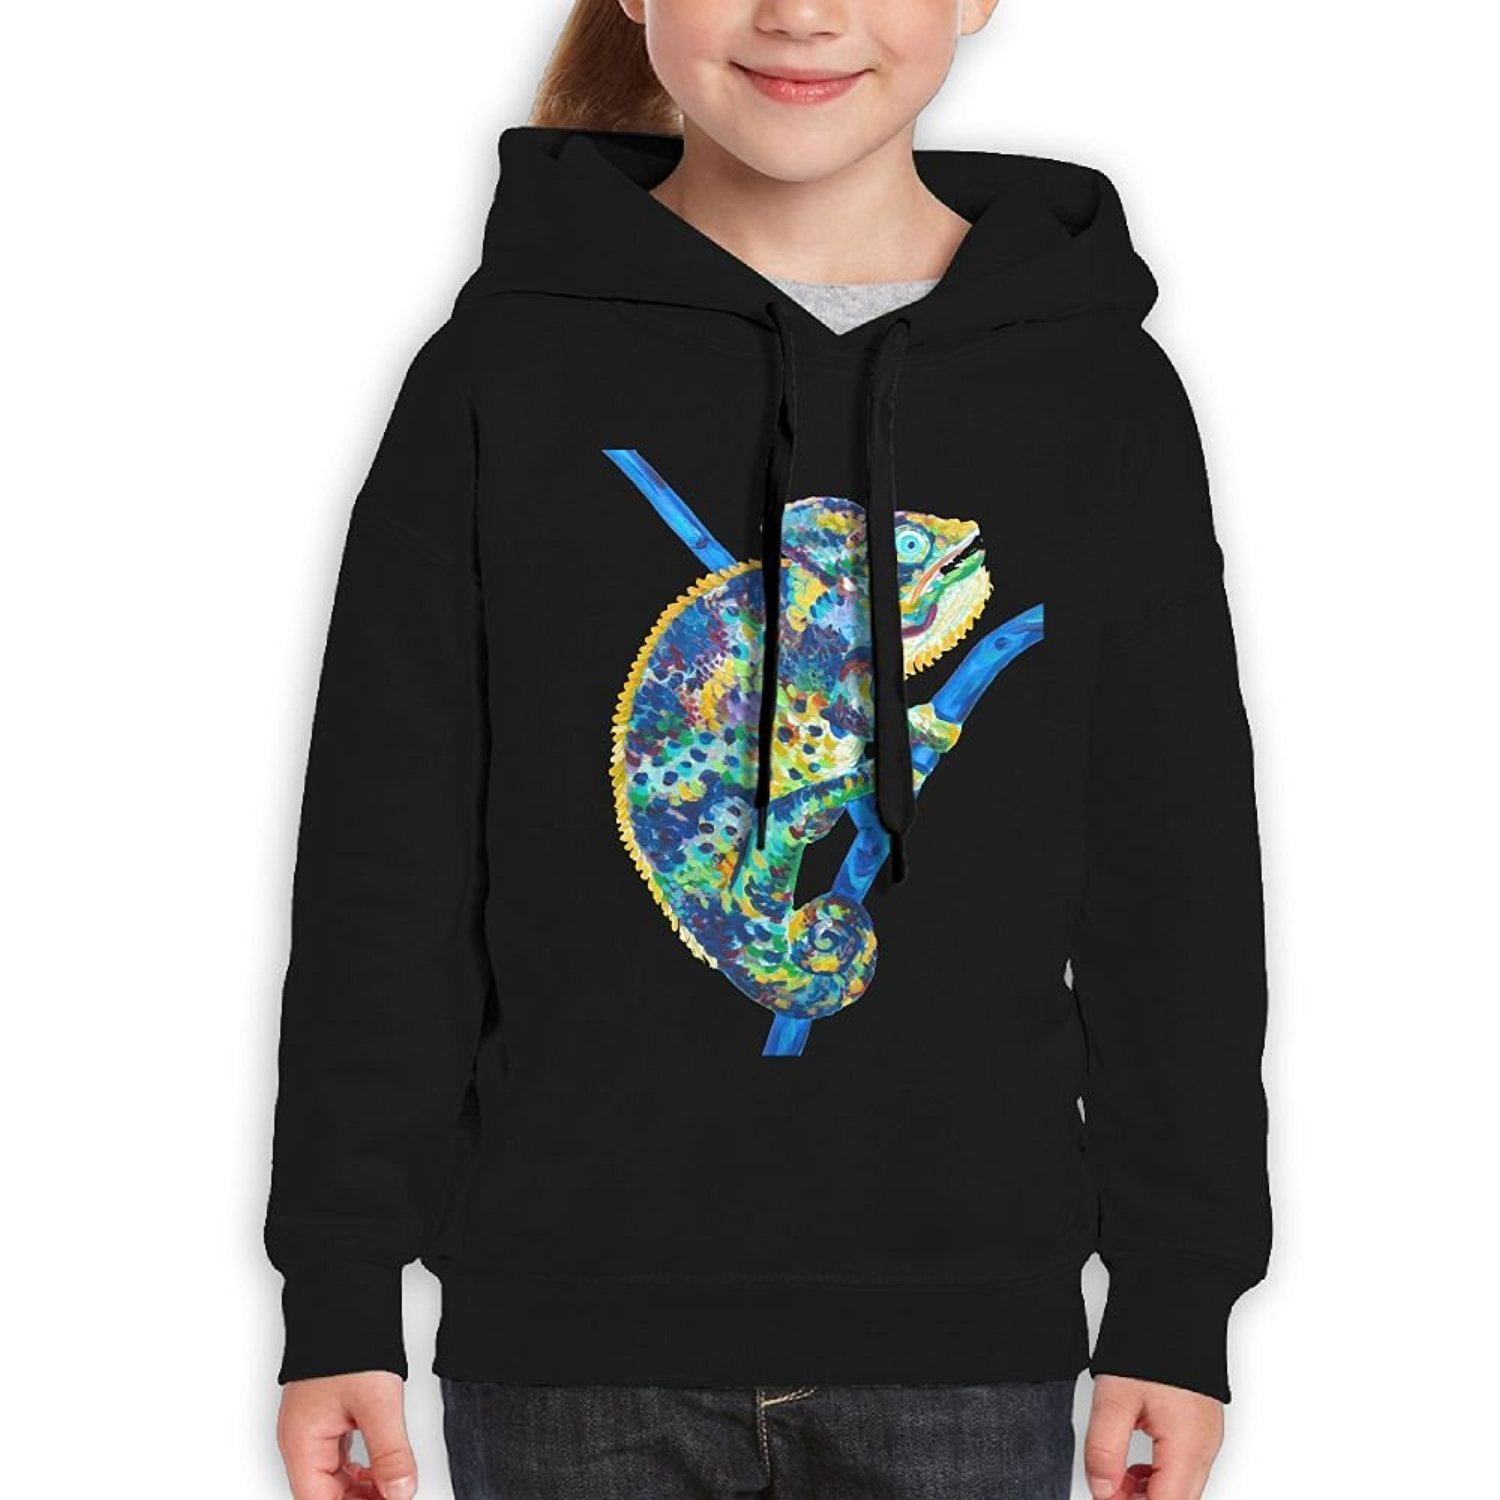 Starcleveland Teenager Pullover Hoodie Sweatshirt Reptile Teen's Hooded Boys Girls